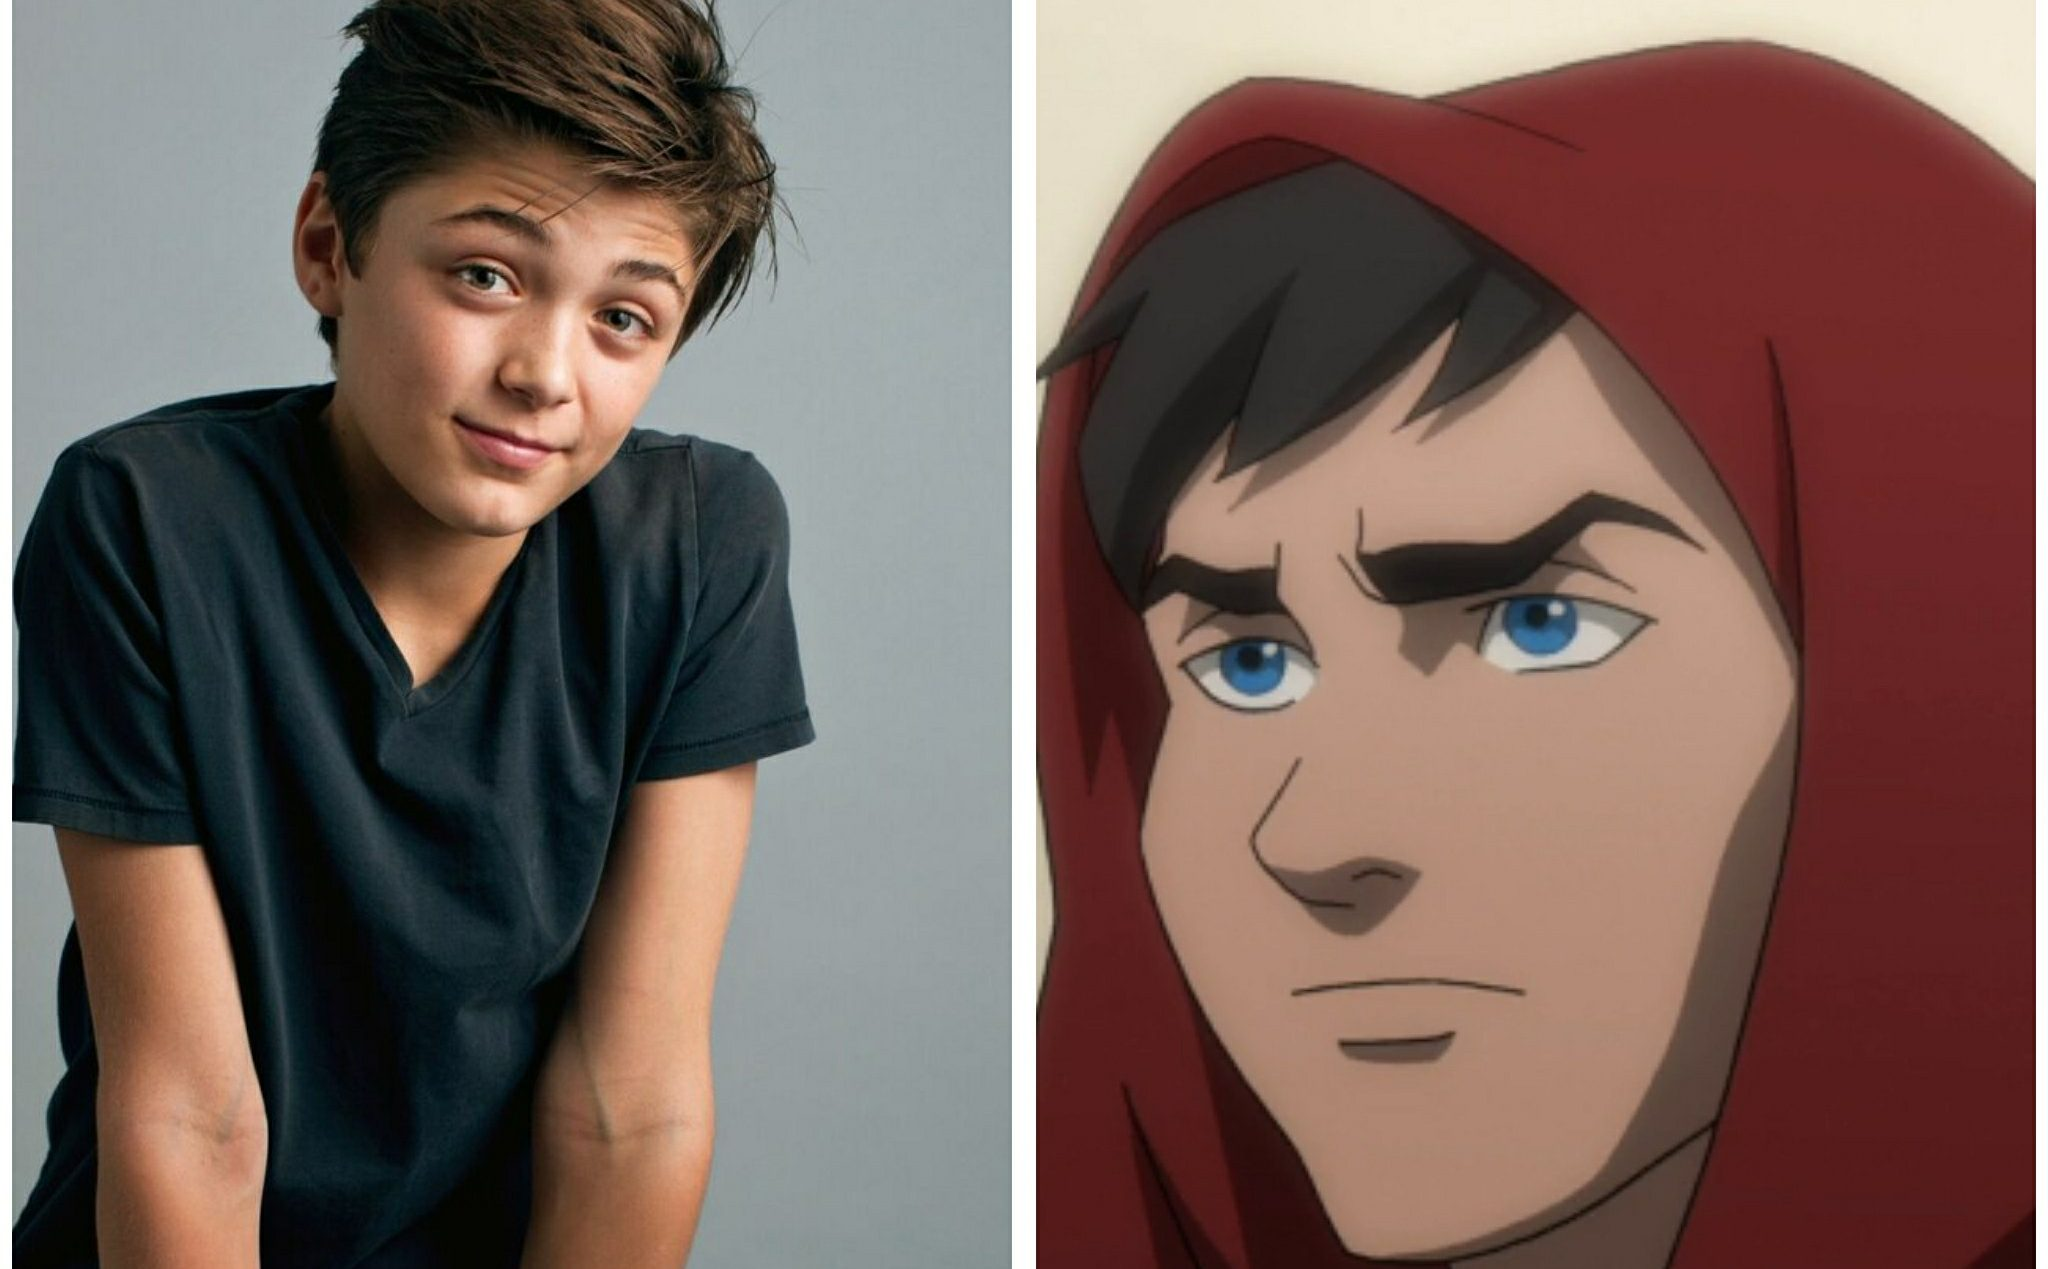 Billy Batson played by Asher Angel